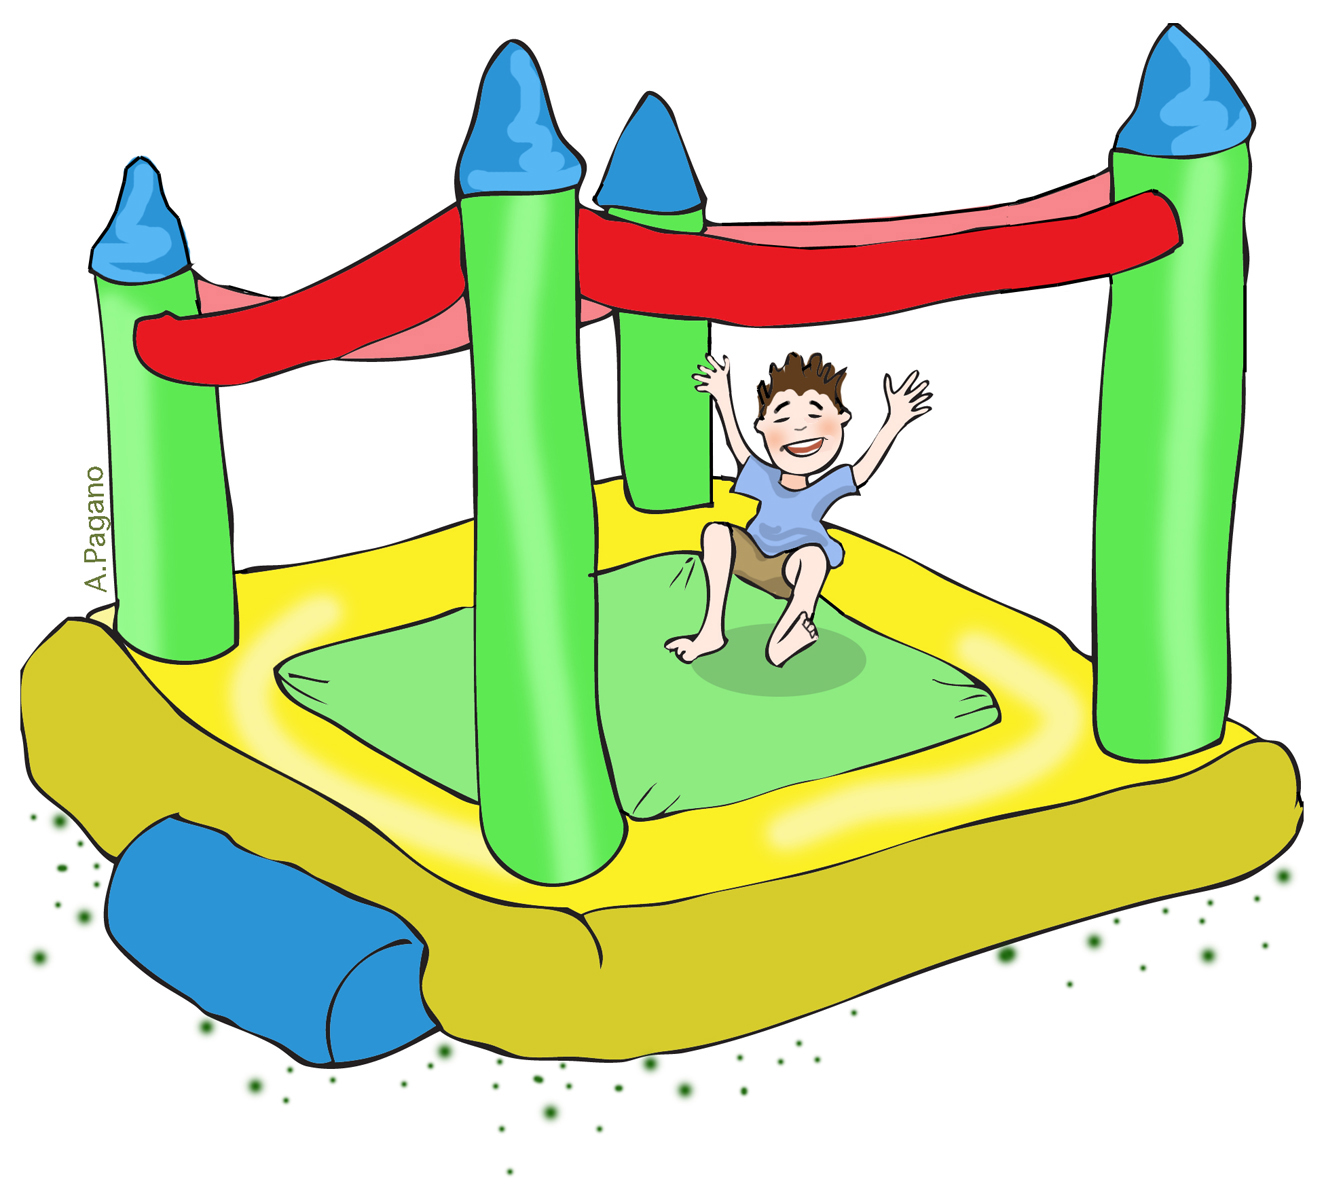 Carnival clipart bouncy castle. Free games clip art